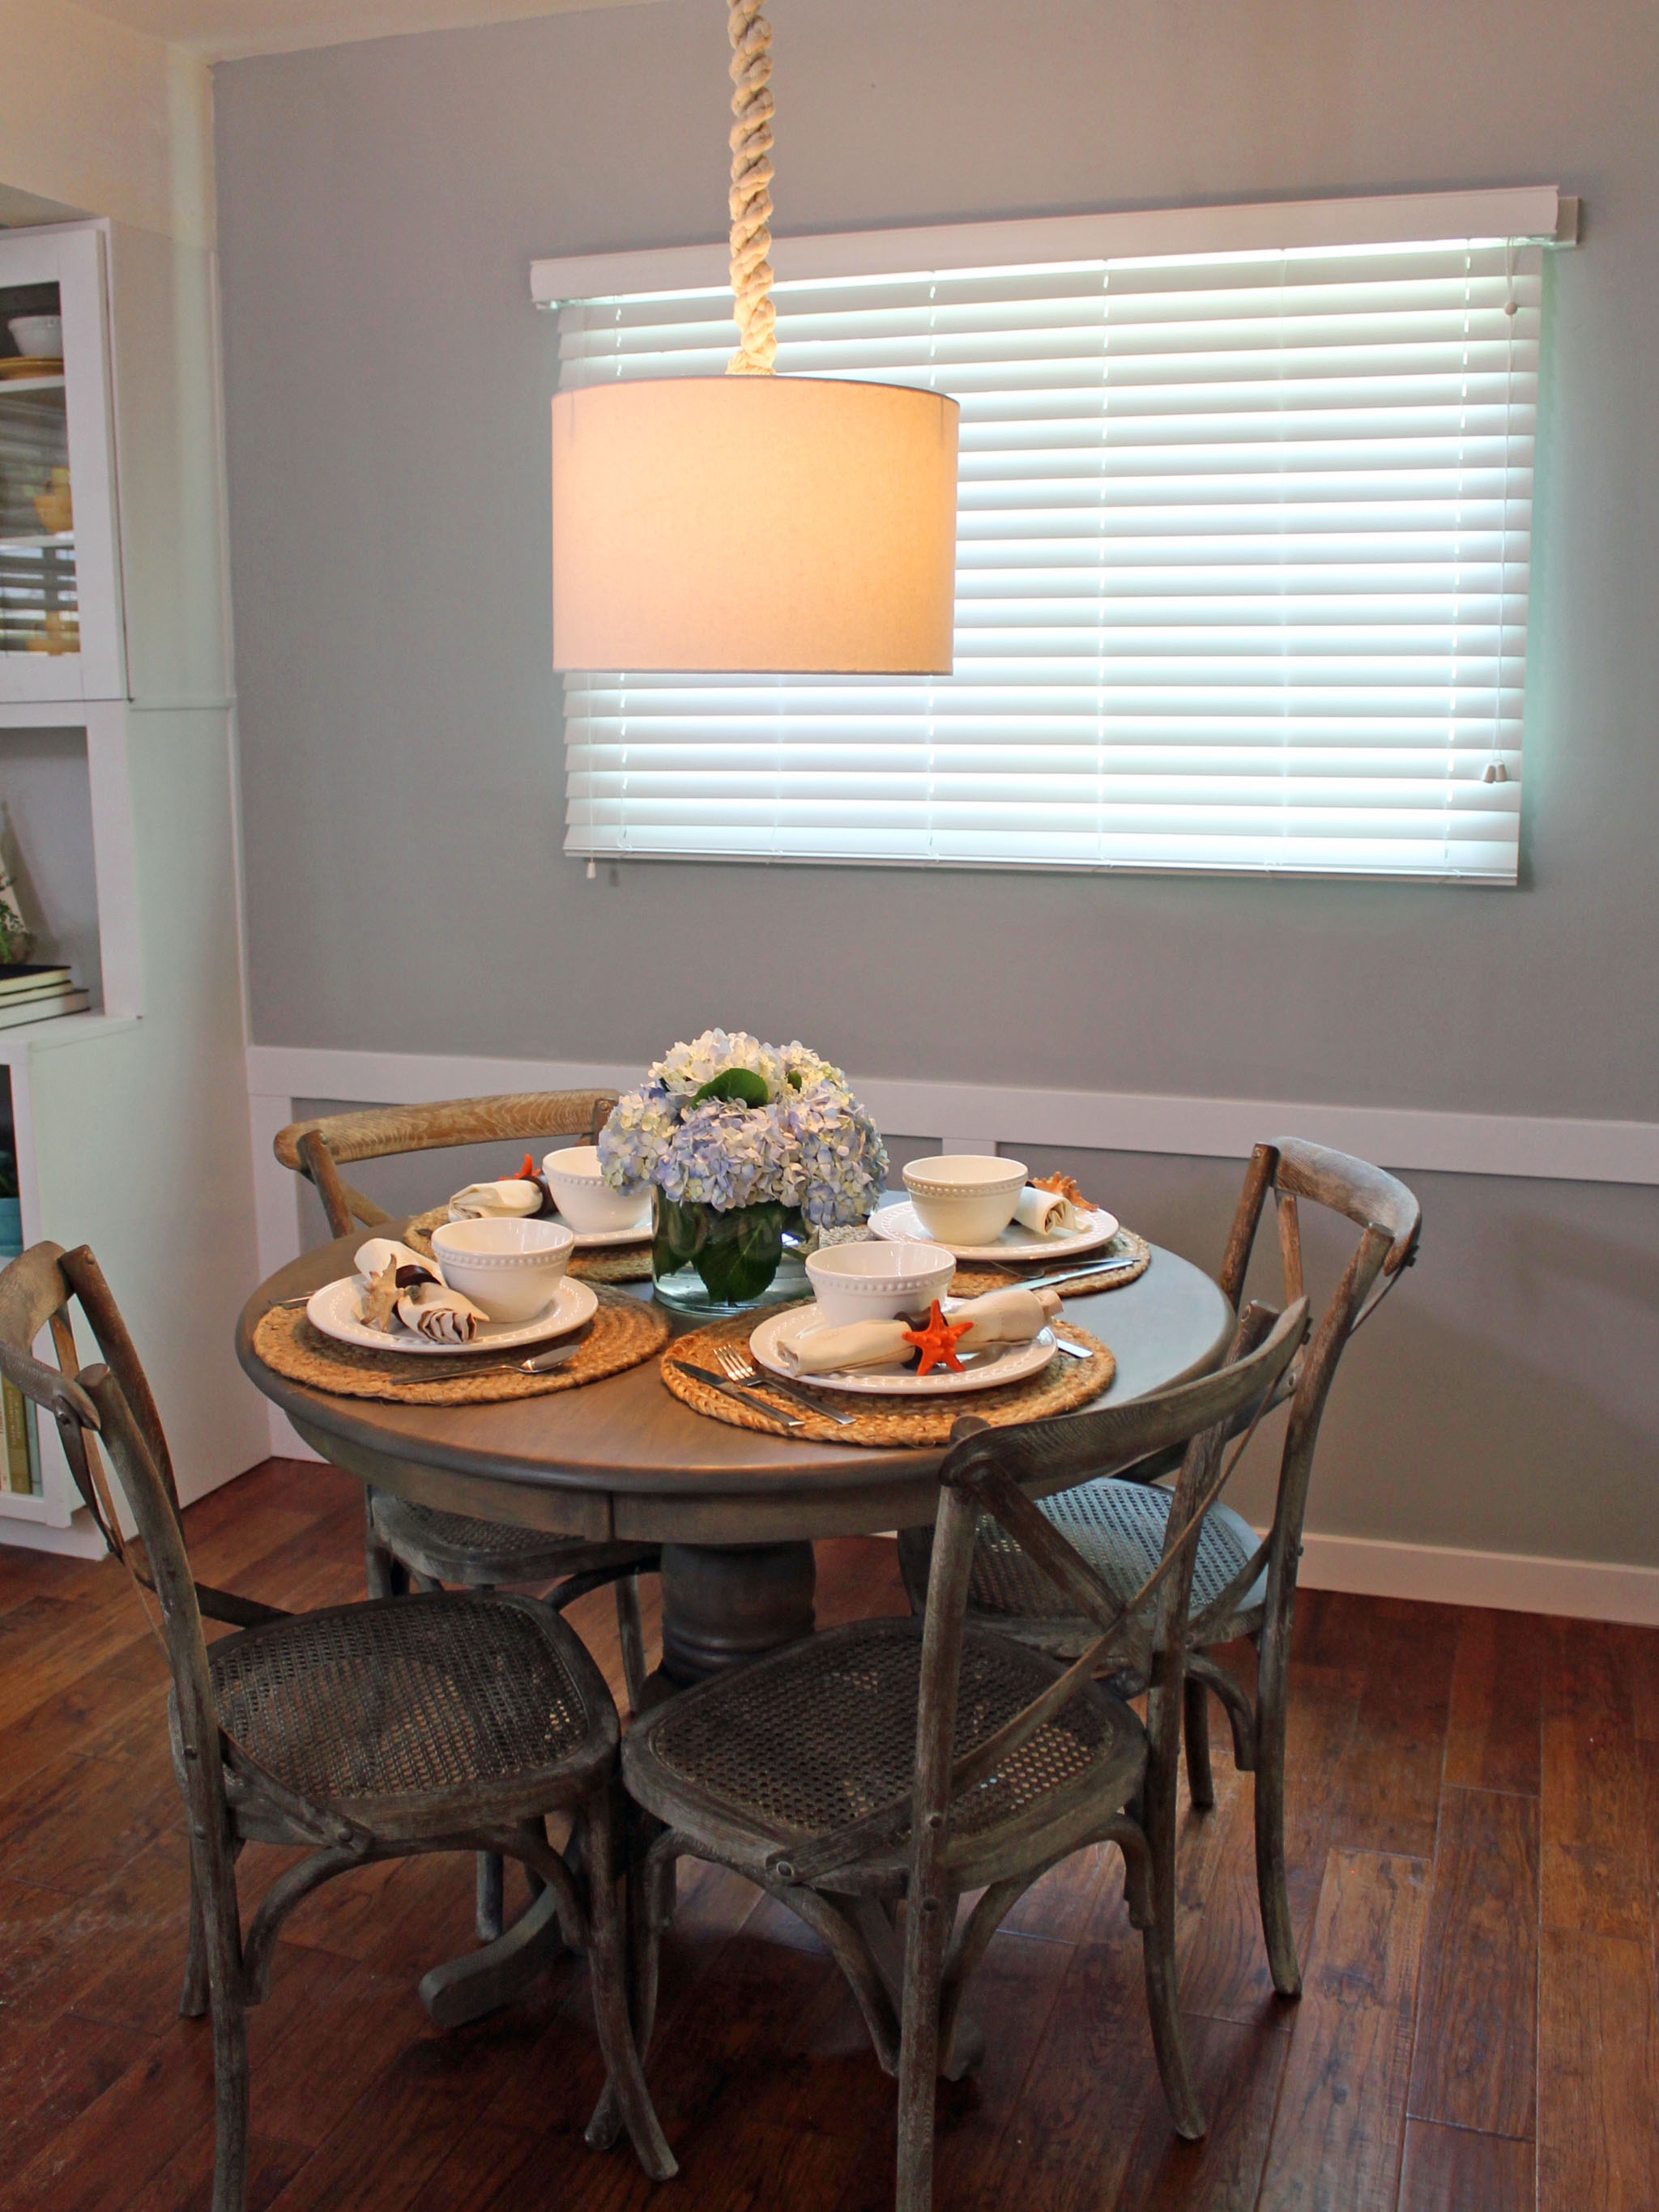 SmallSpace Dining Room Decoration Tips 17035  Dining